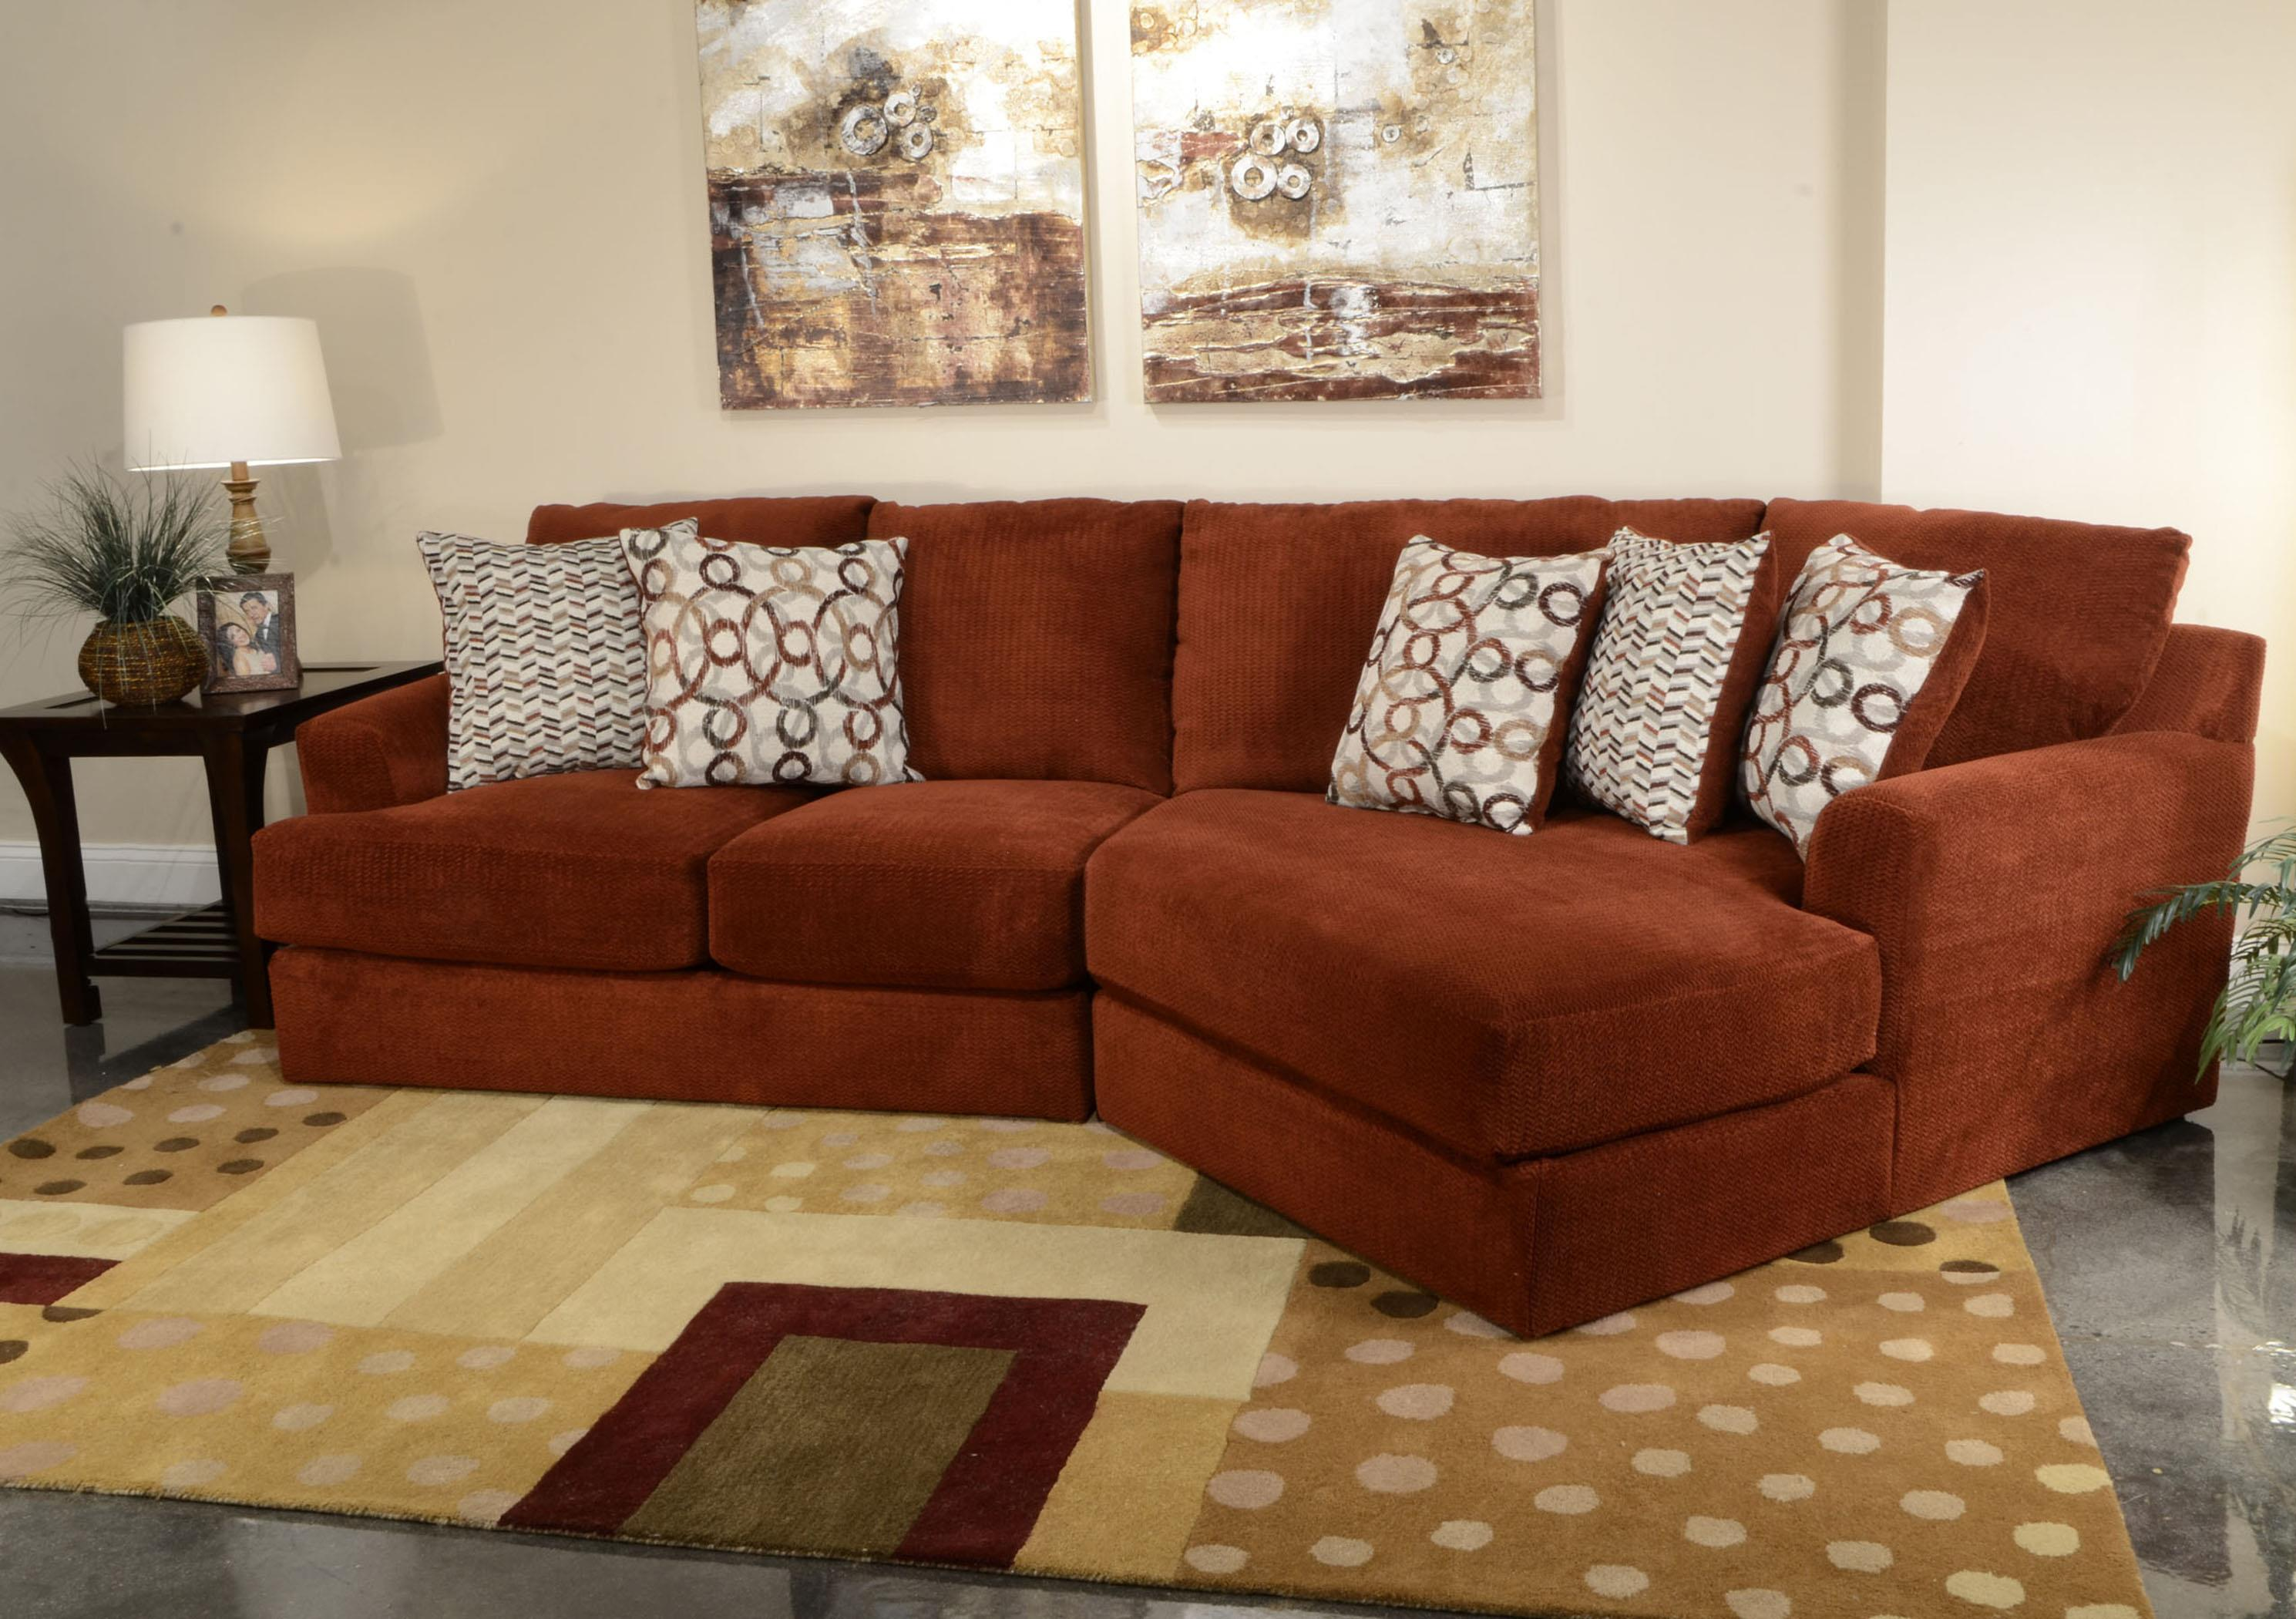 Three Seat Sectional : jackson furniture sectional - Sectionals, Sofas & Couches